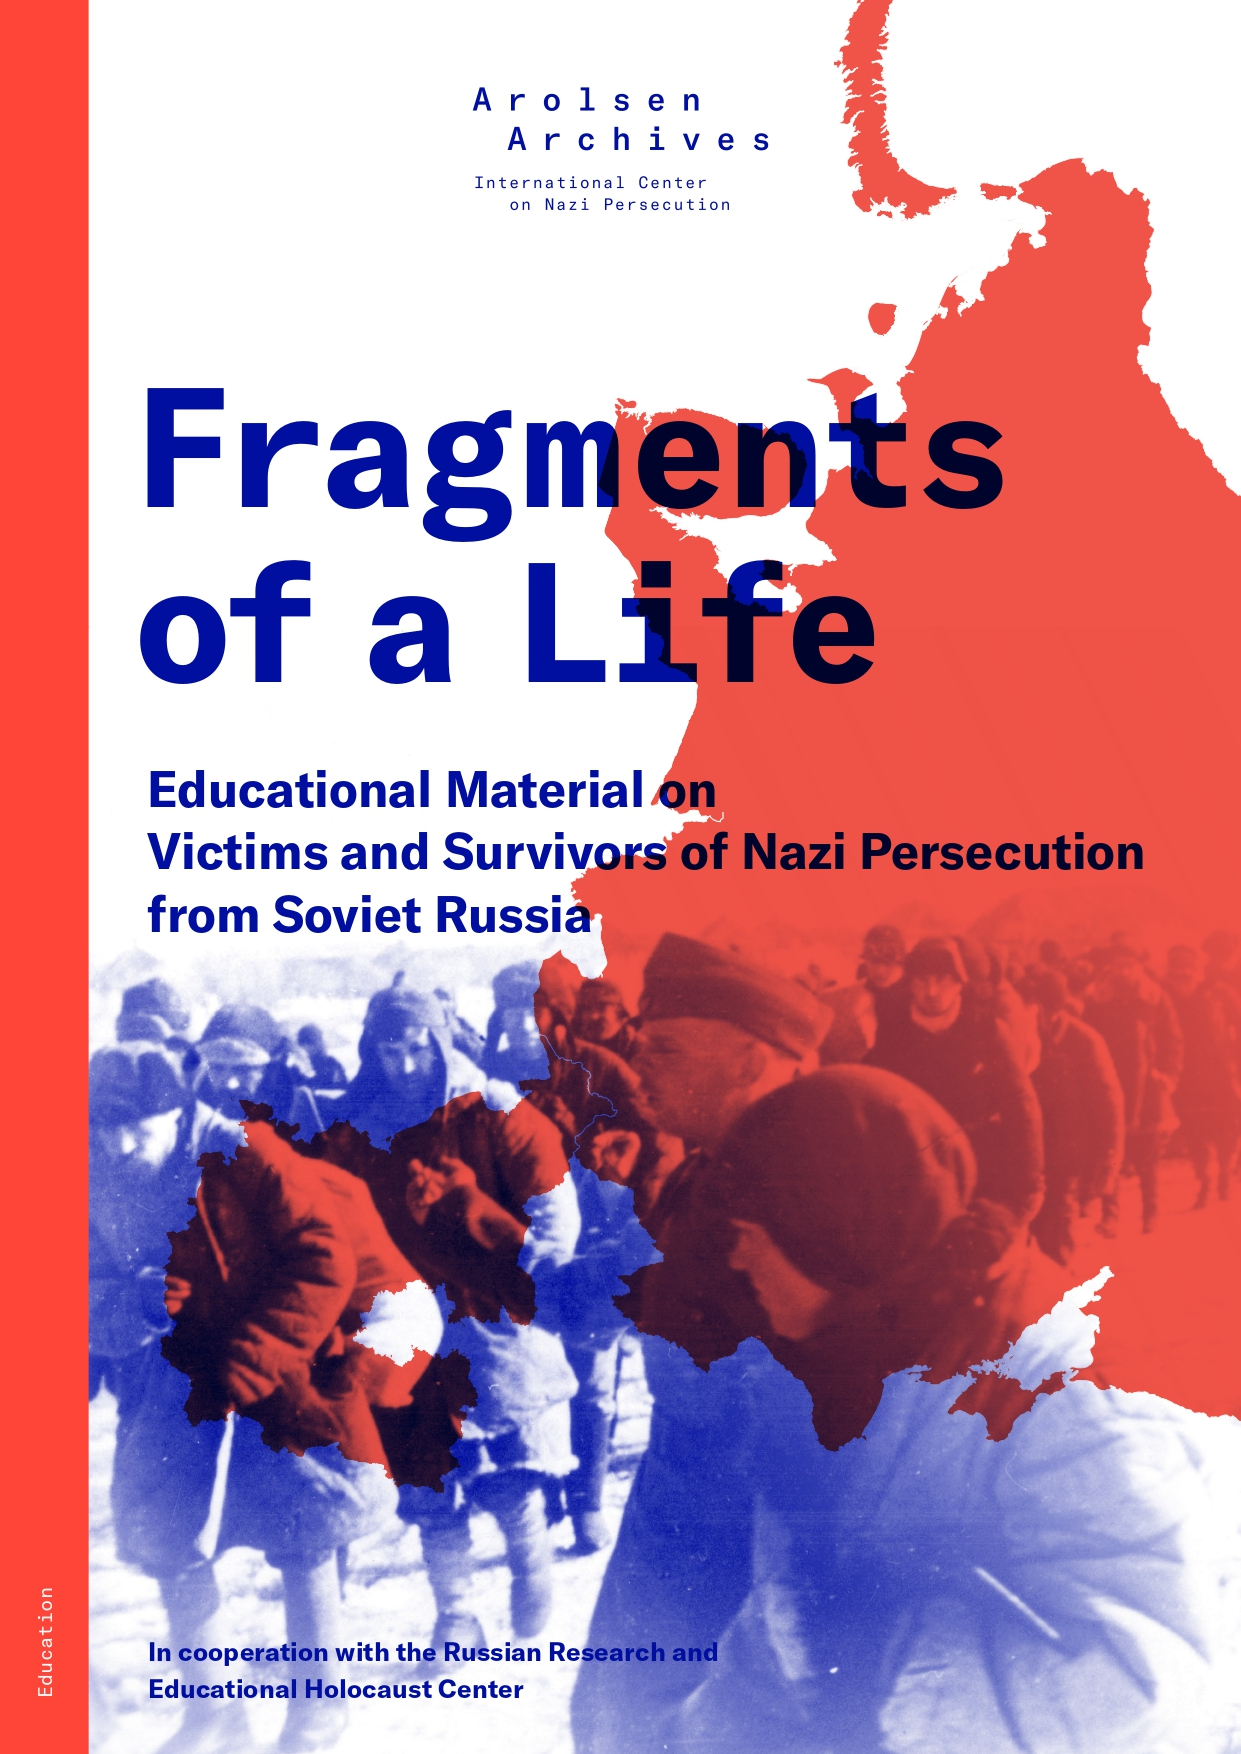 Fragments of a Life – Educational Material on Victims and Survivors of Nazi Persecution from Soviet Russia